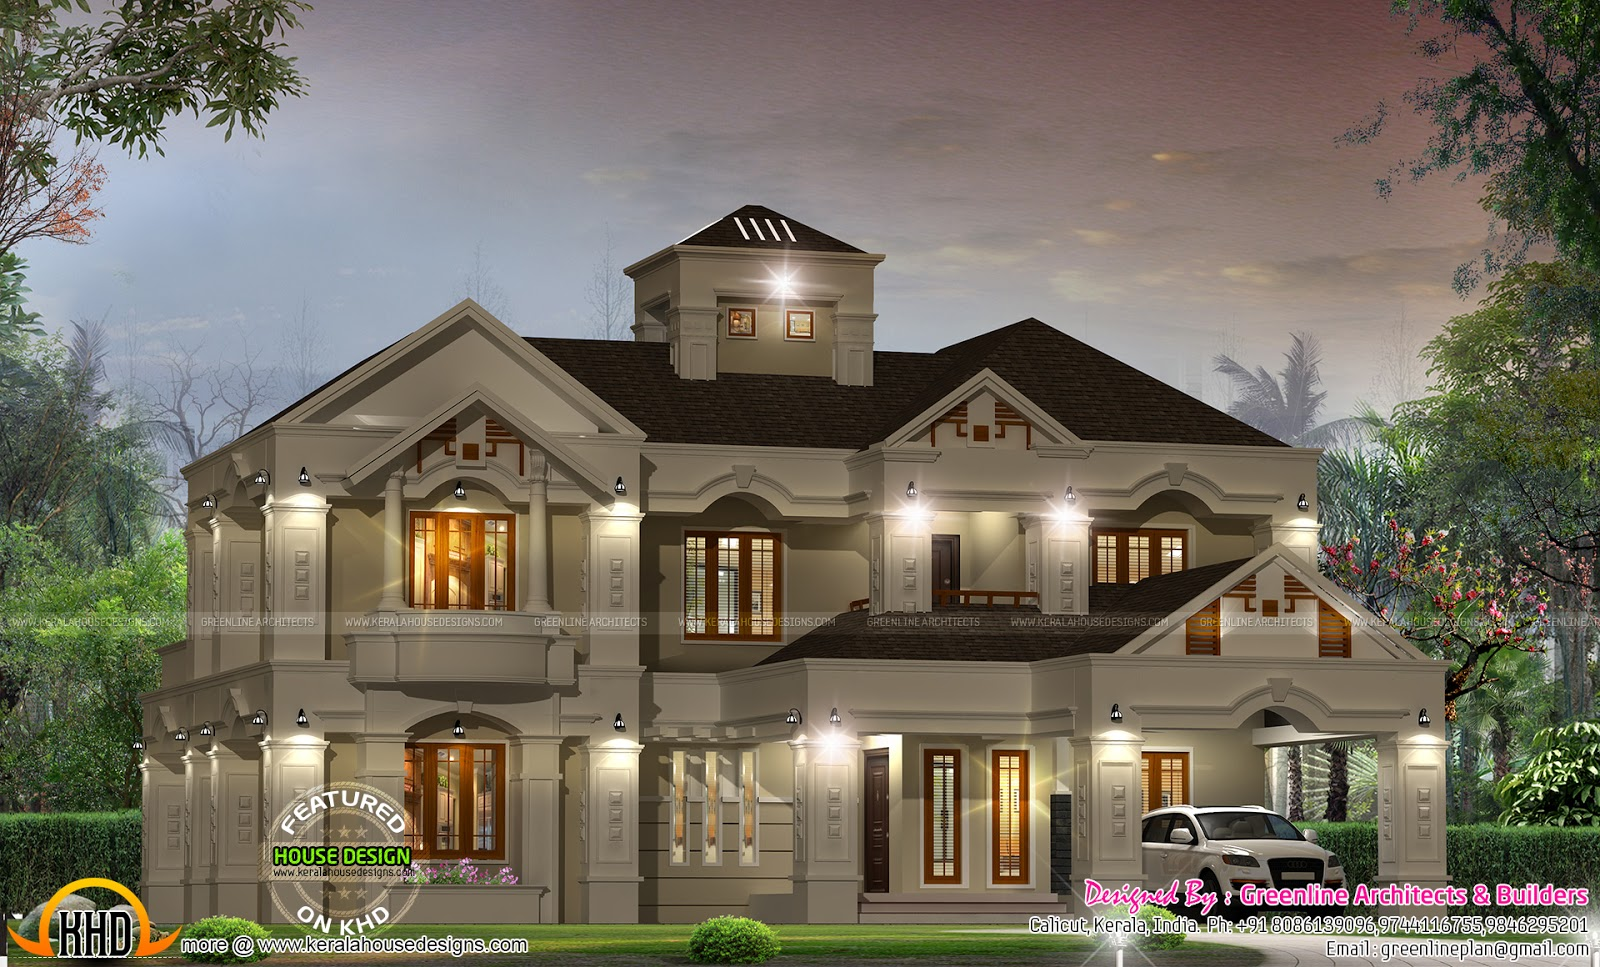 Luxury villa design in kerala kerala home design and for Luxury home architect